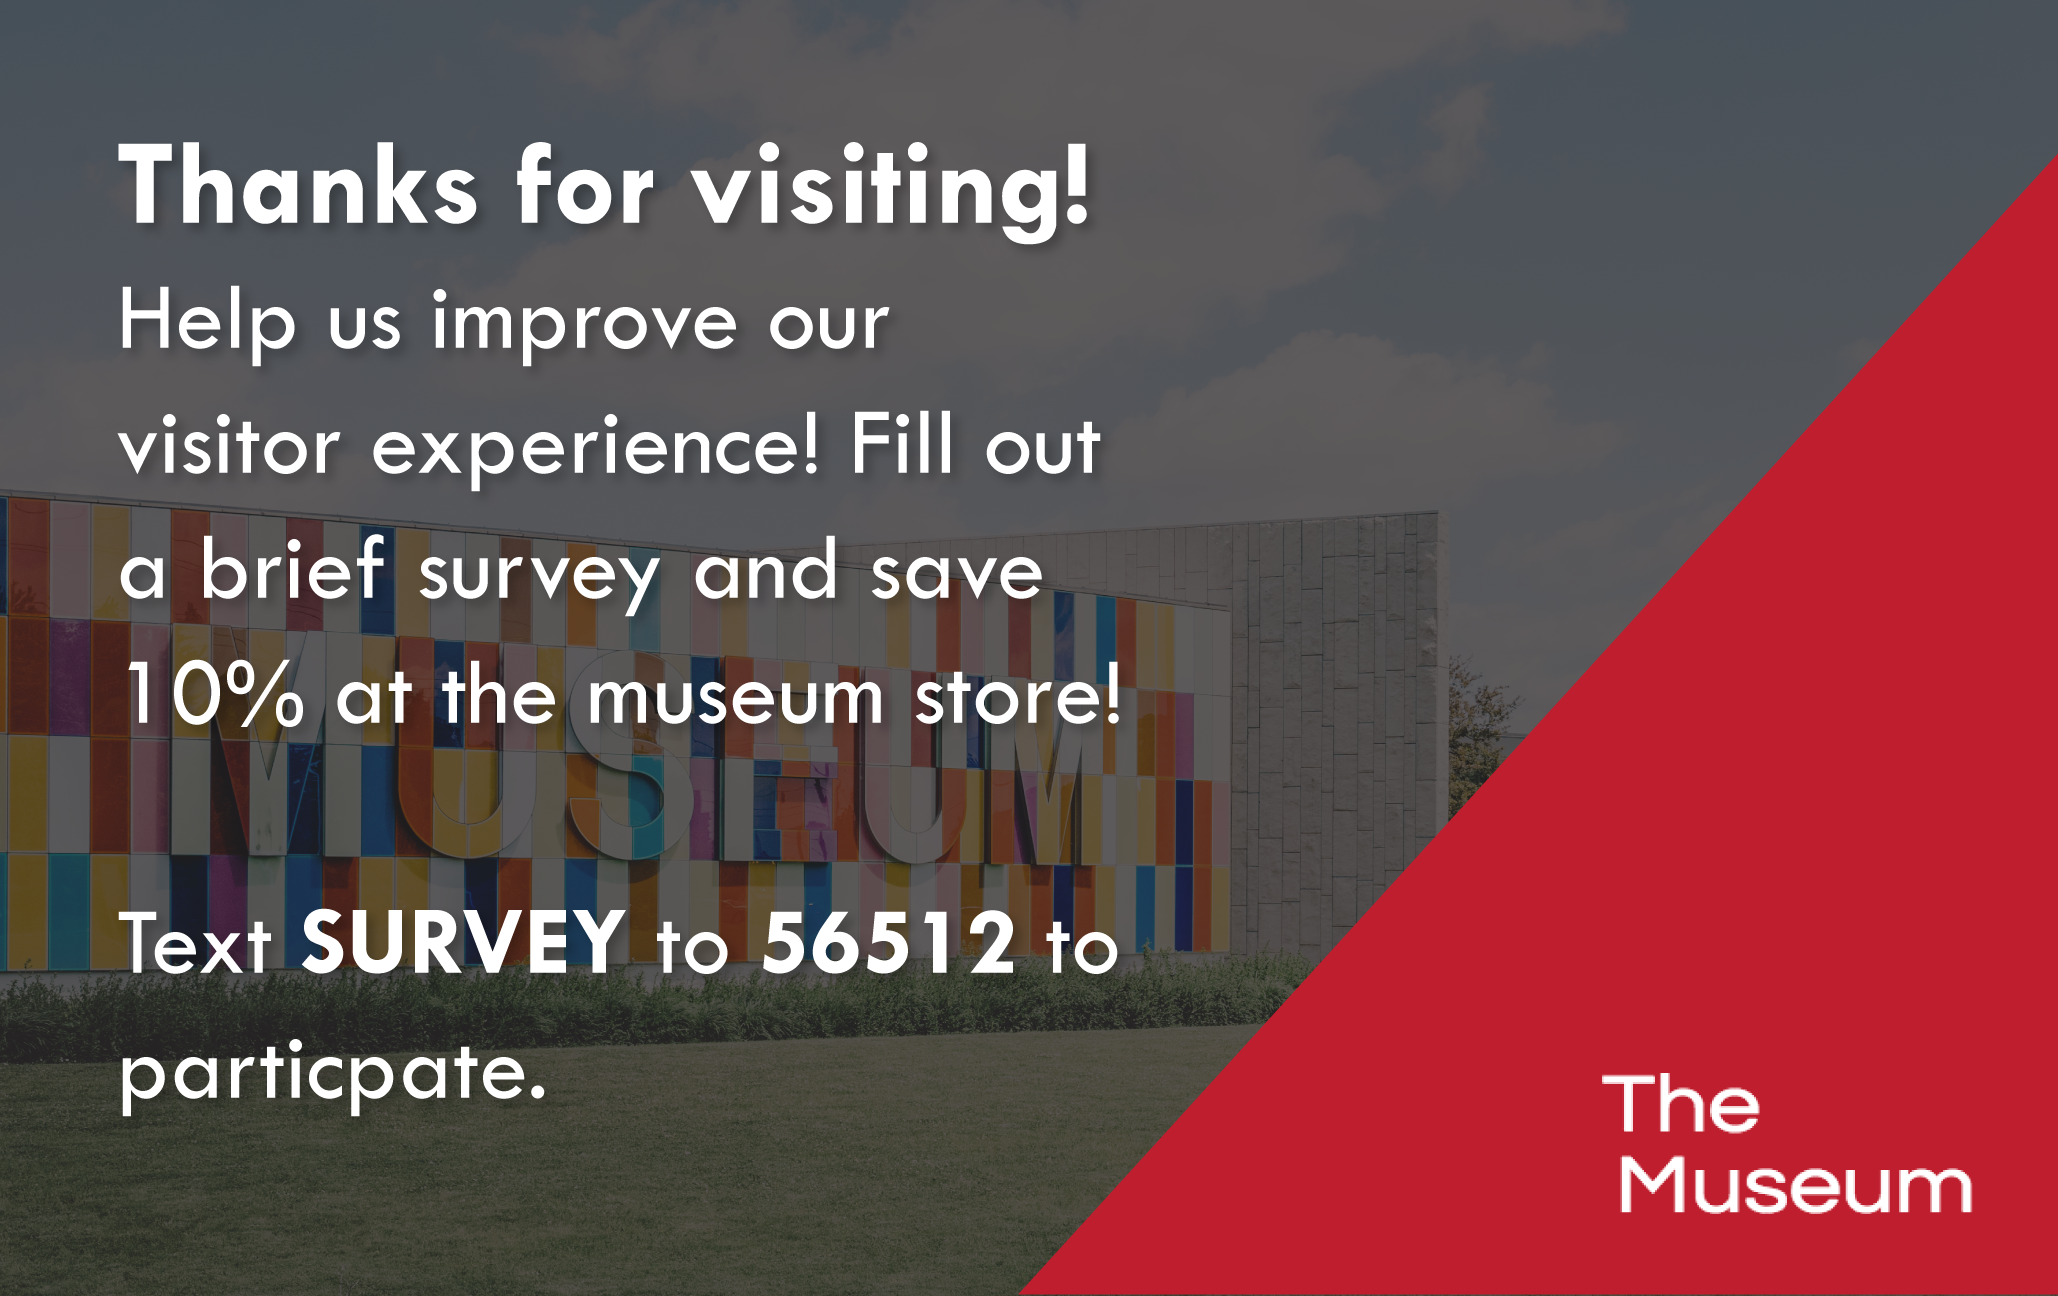 Fill out survey for museum store savings